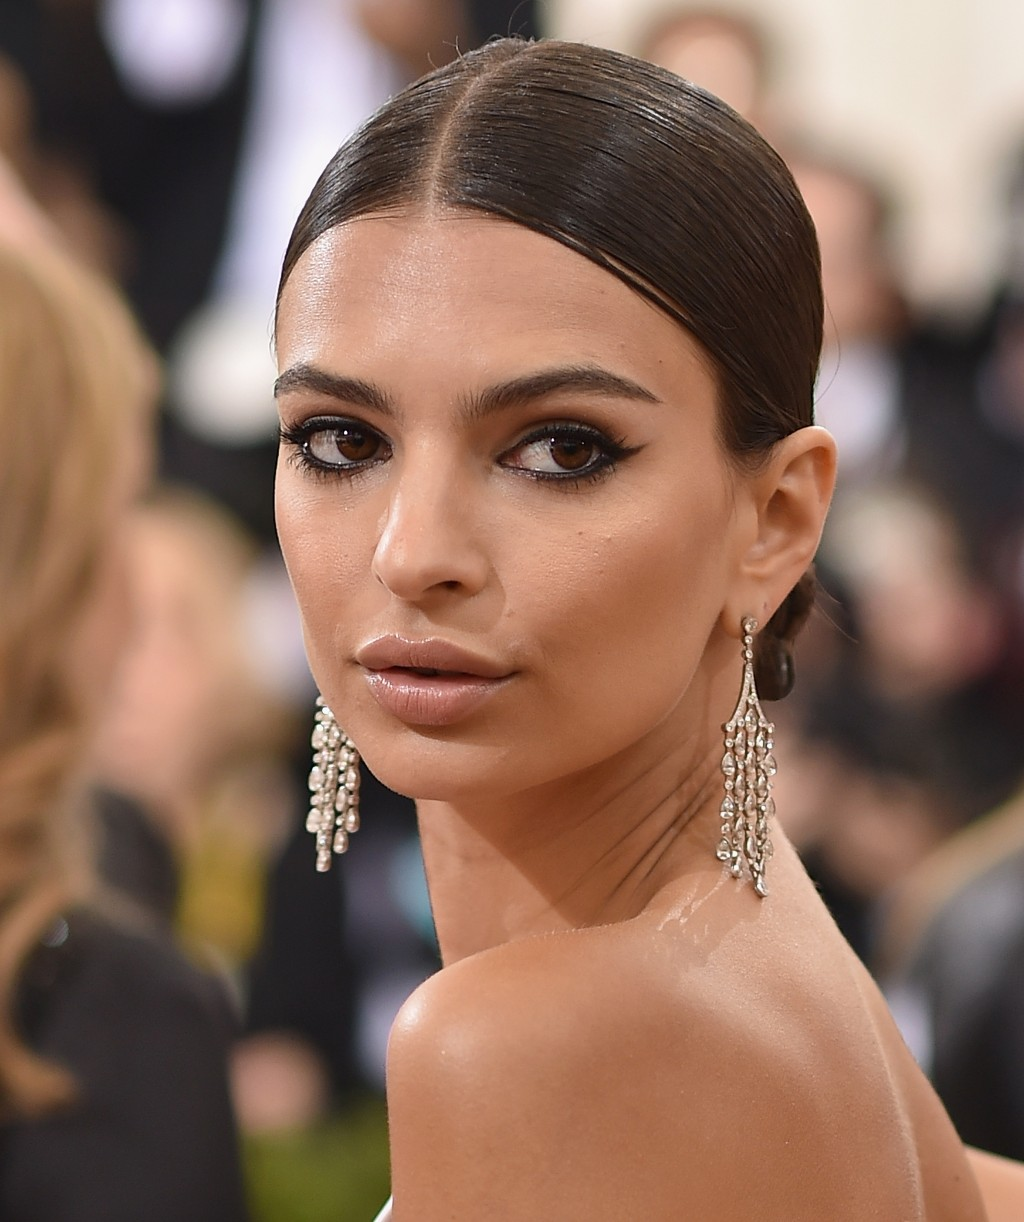 The Met Gala's Number One Beauty Product This Year? A Tub of Gel